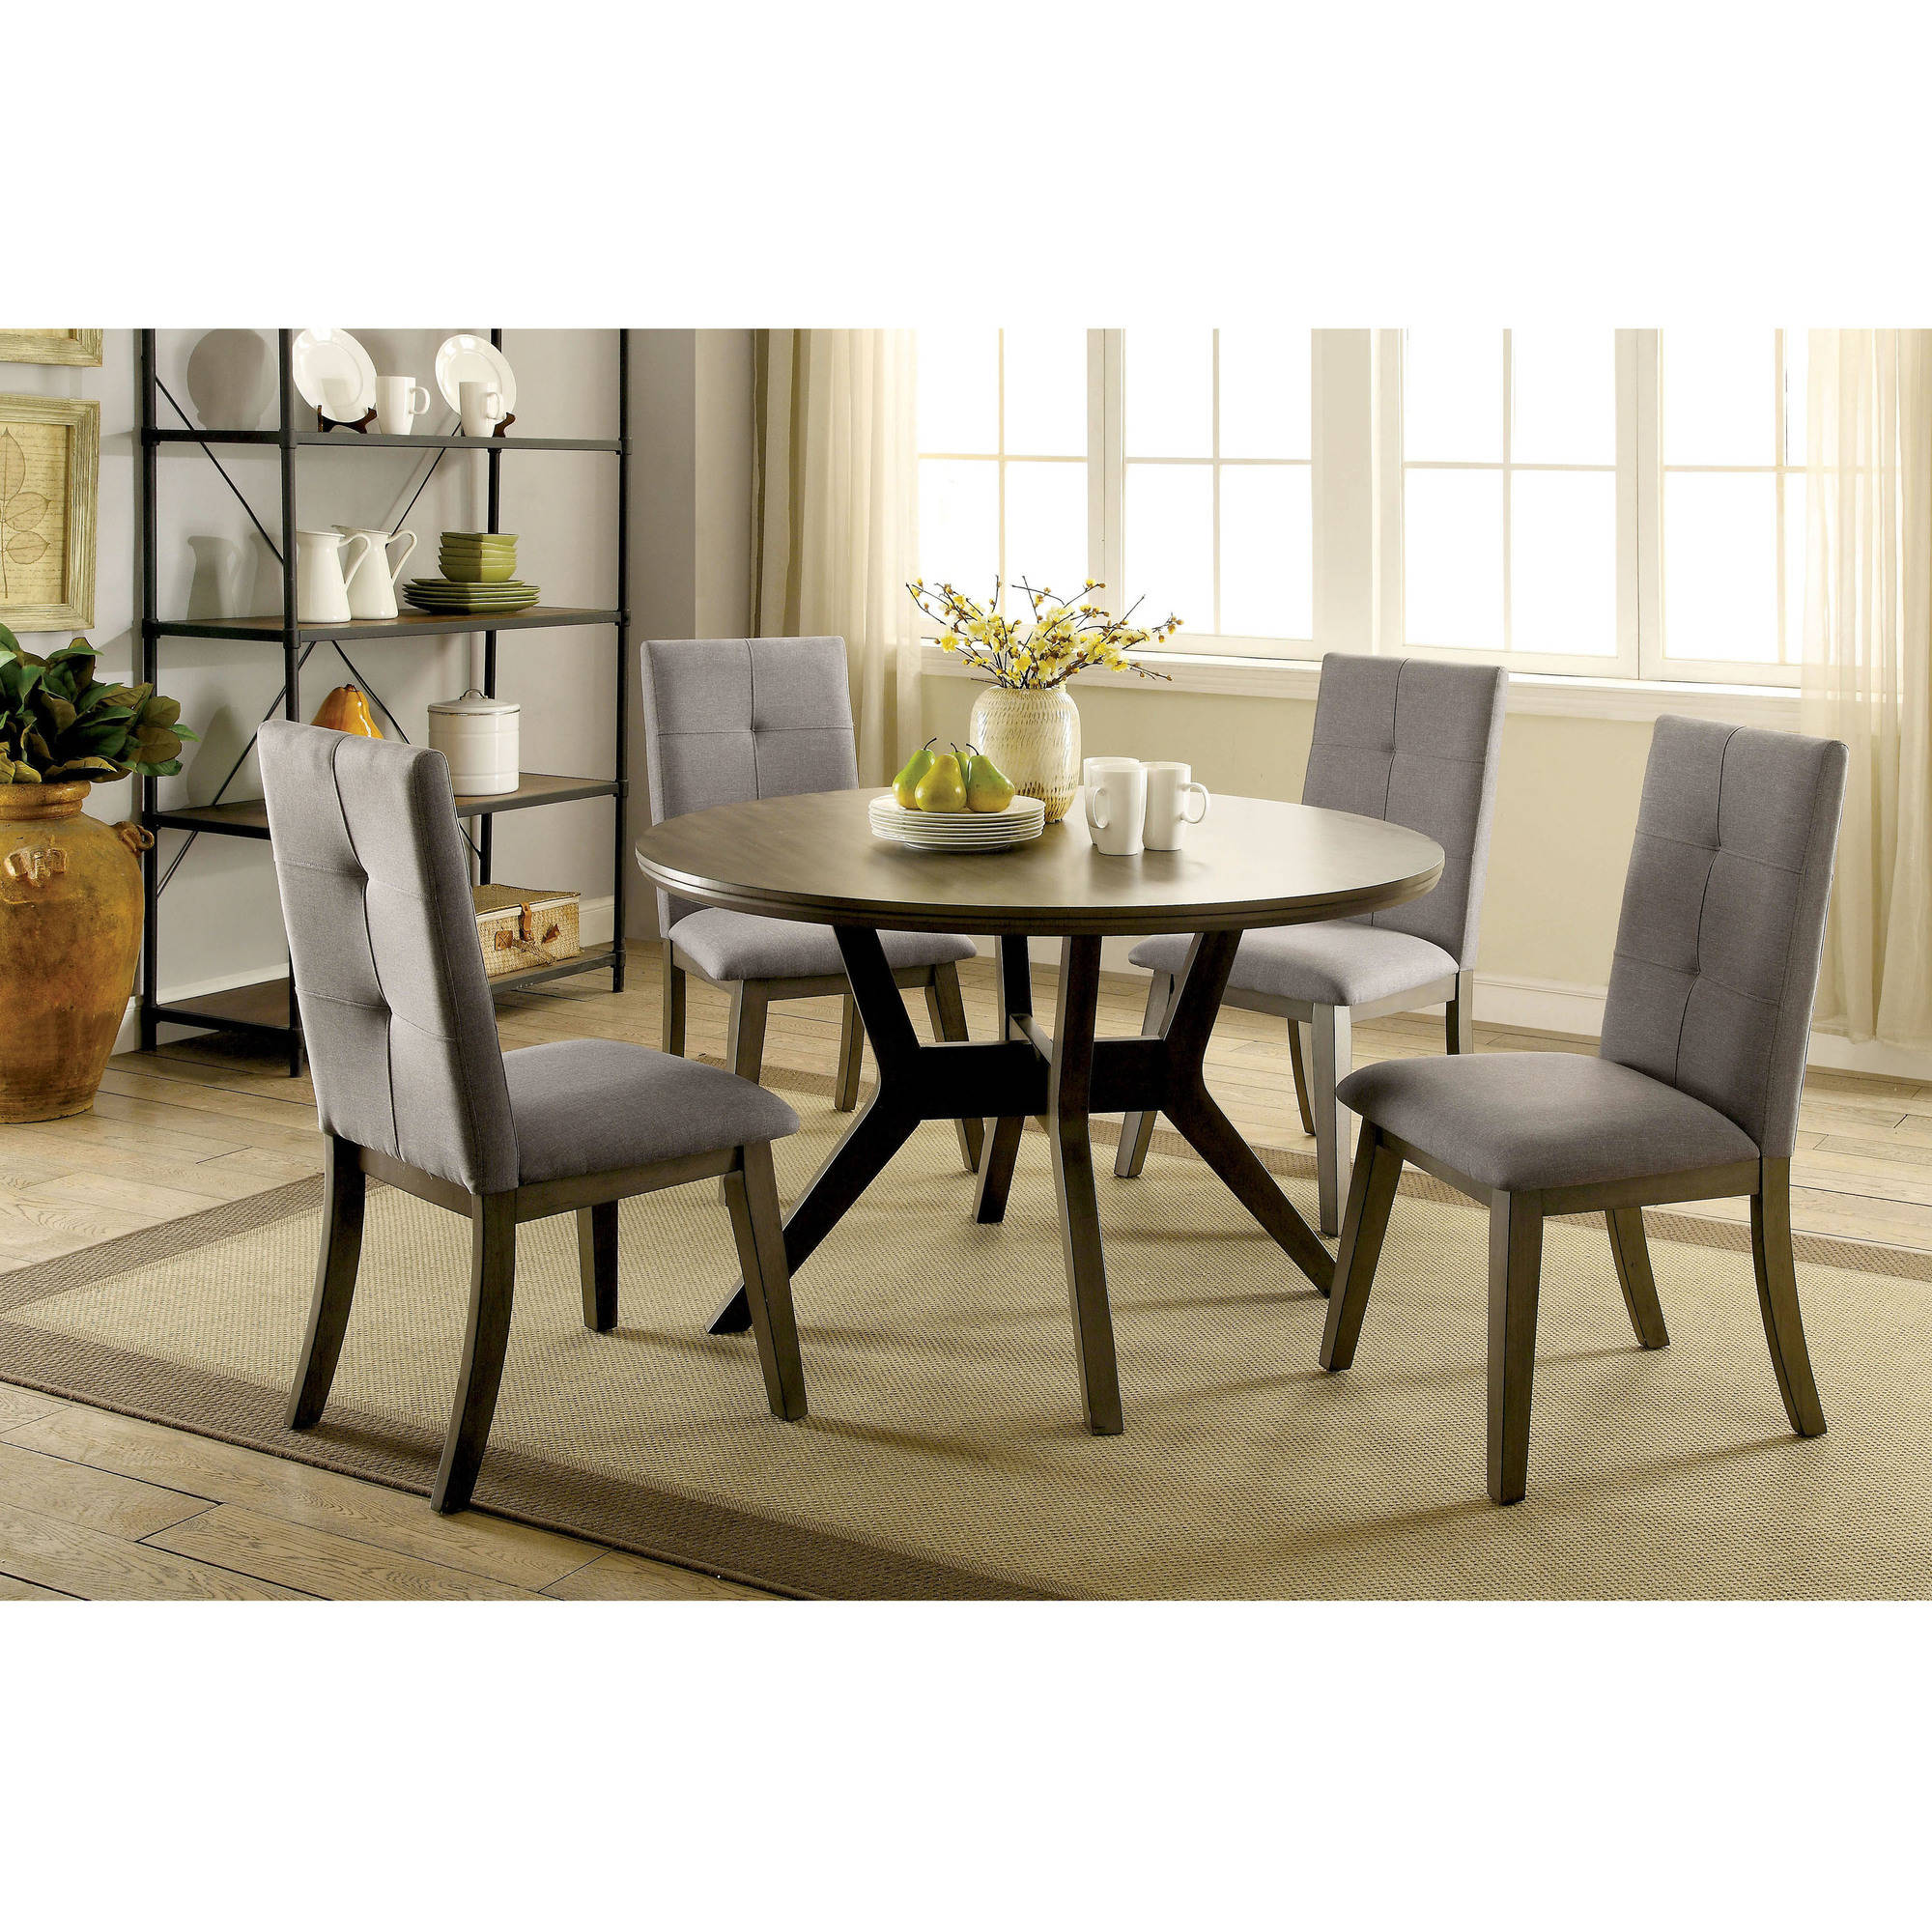 Furniture of America Lailina Mid-Century Round Dining Table